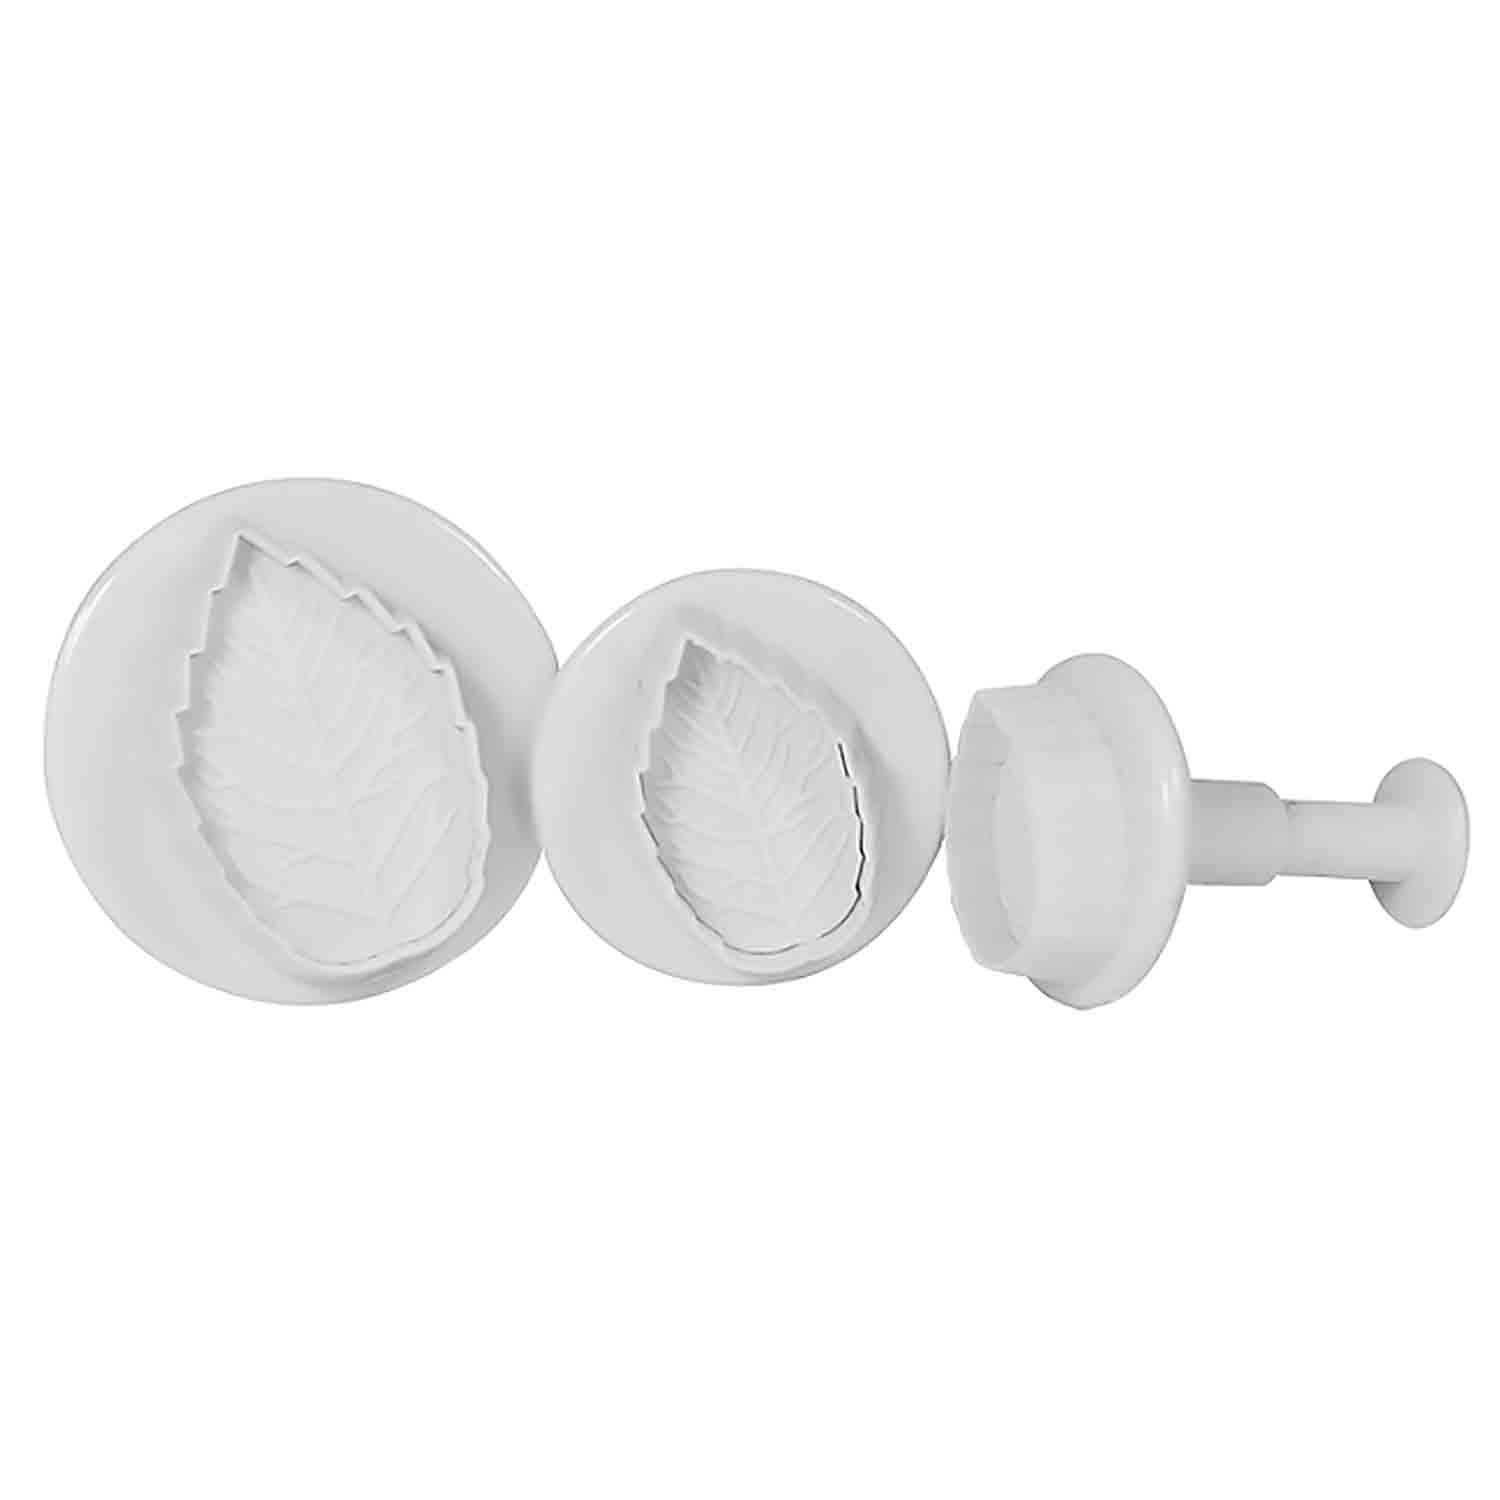 Rose Leaf Plunger Cutter Set